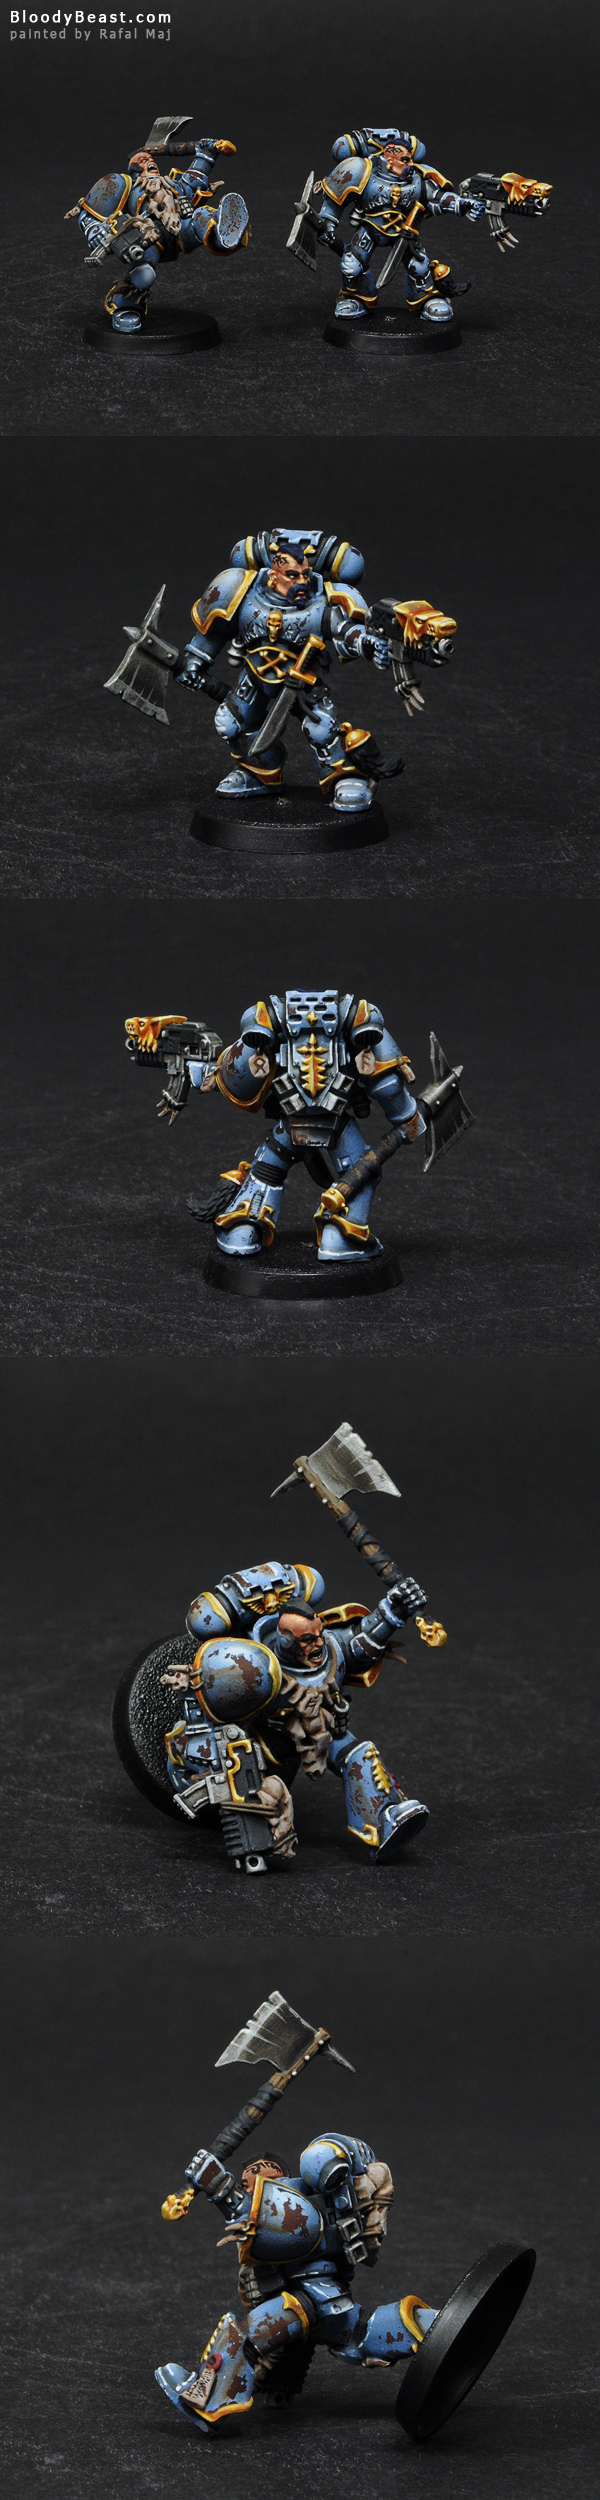 Space Wolves Battle Brothers painted by Rafal Maj (BloodyBeast.com)